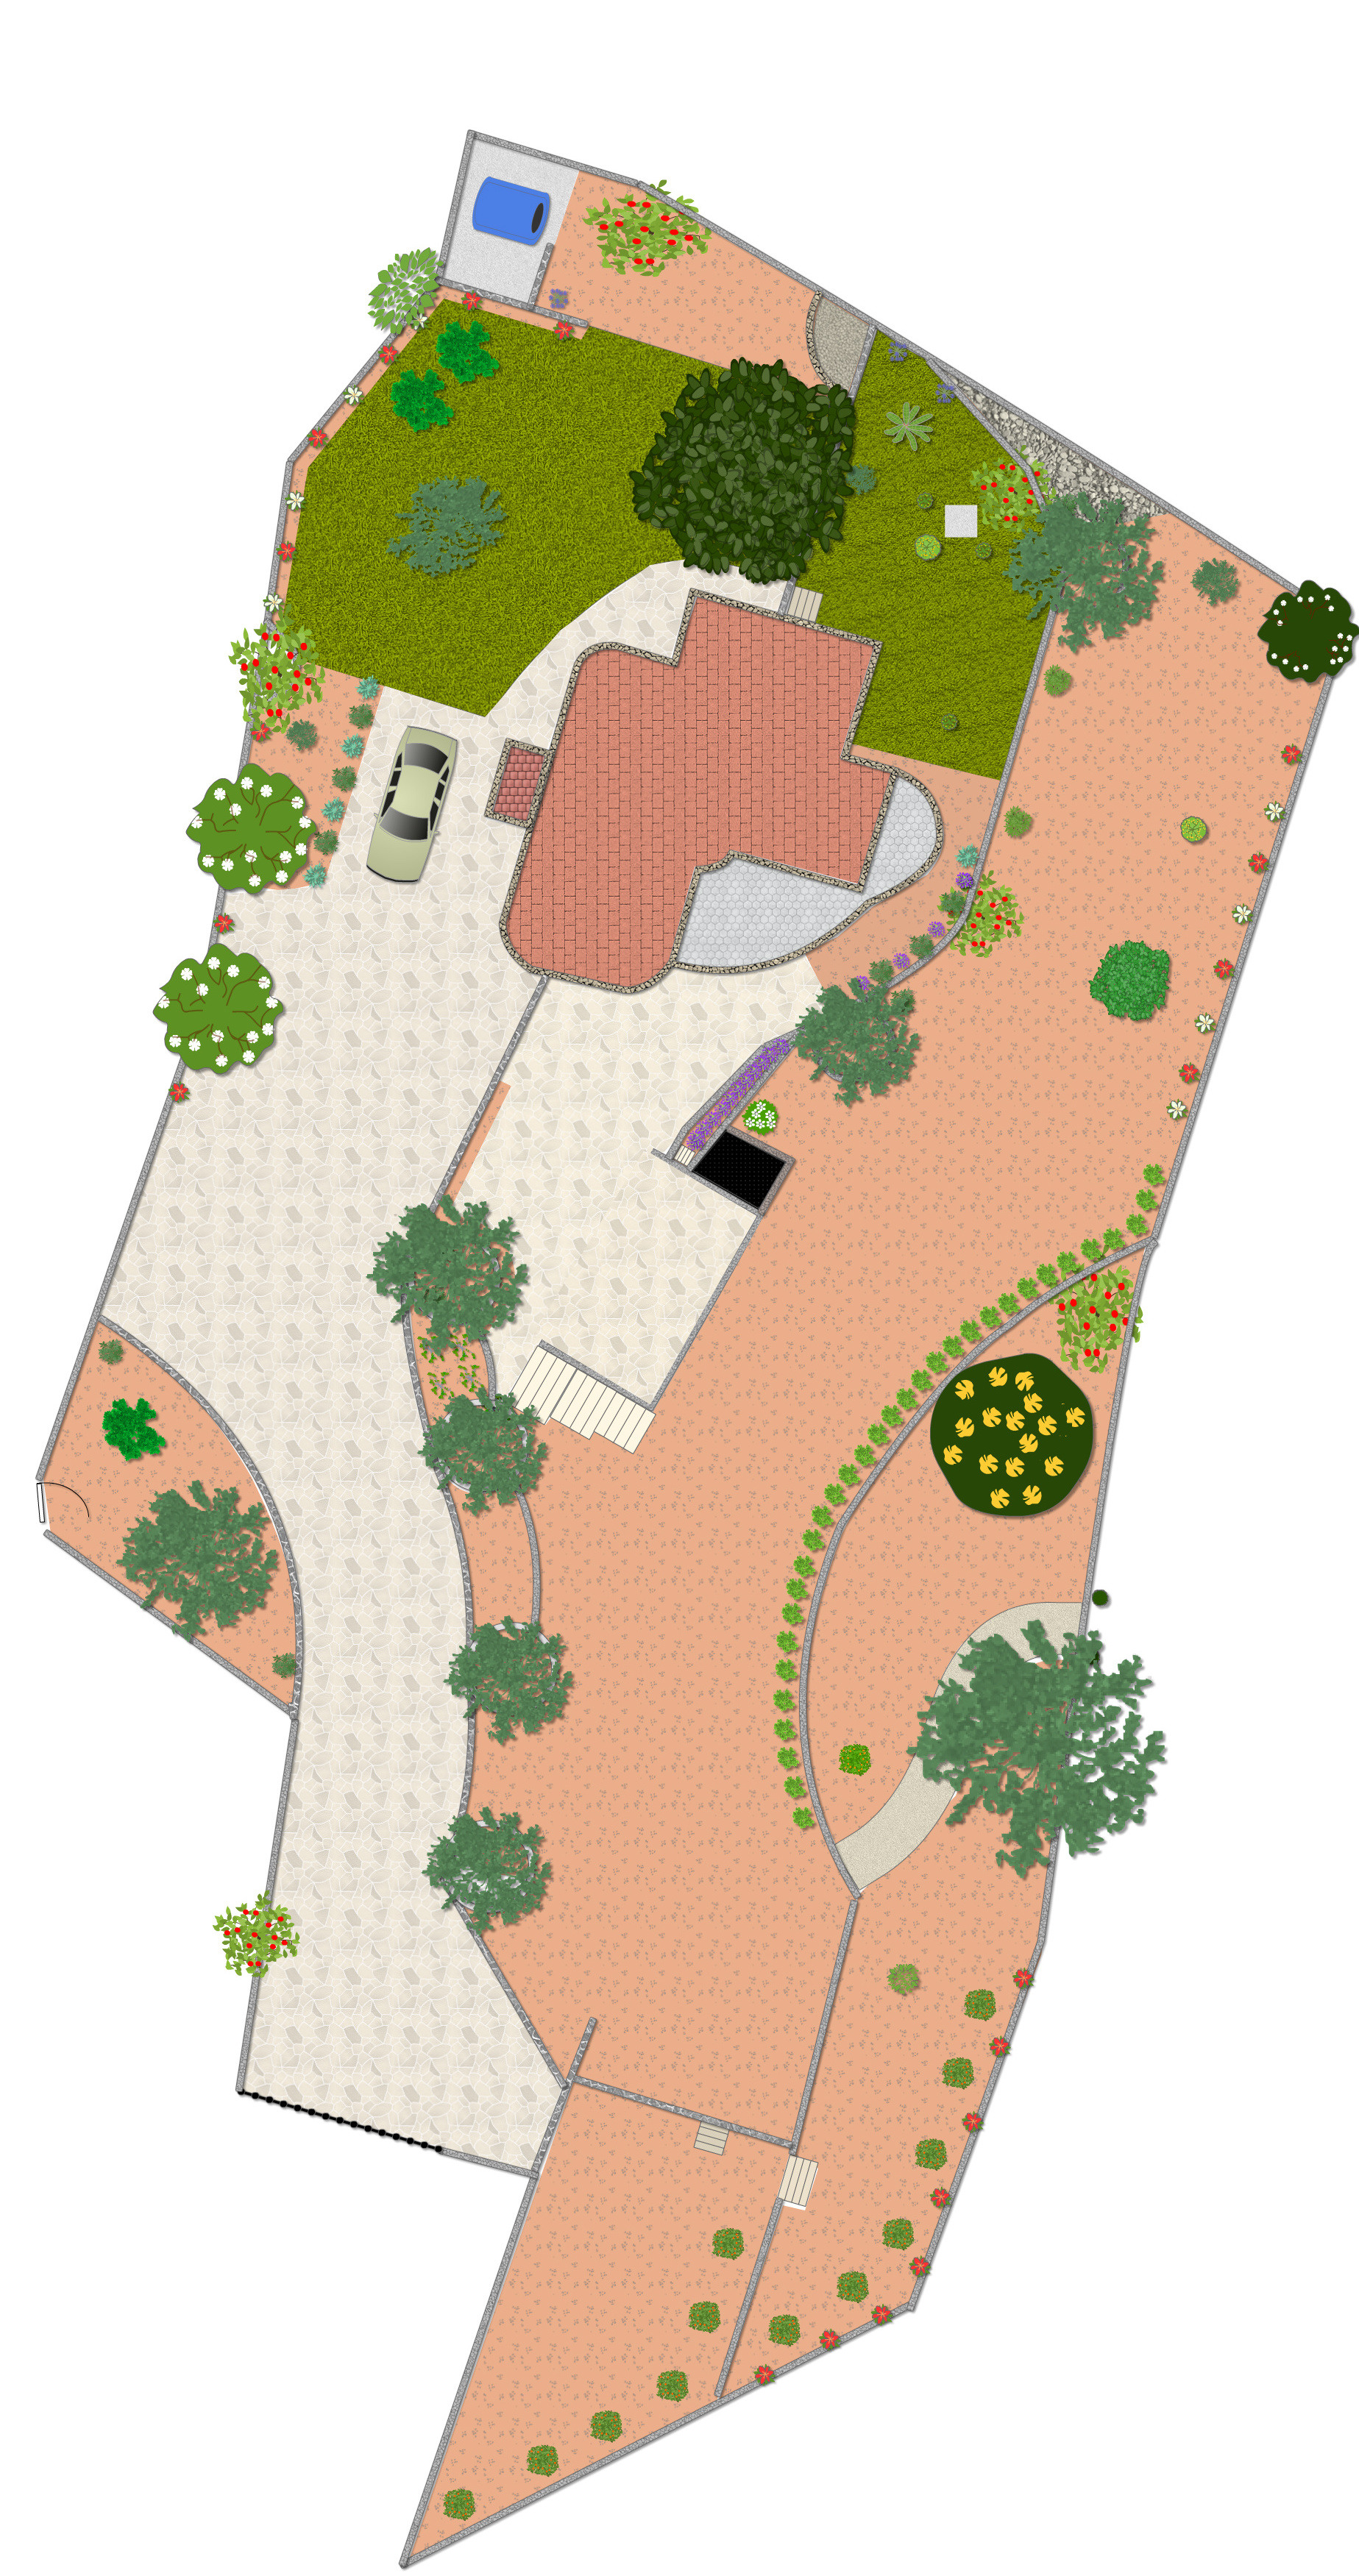 Simon's garden plan using Shoot garden design software